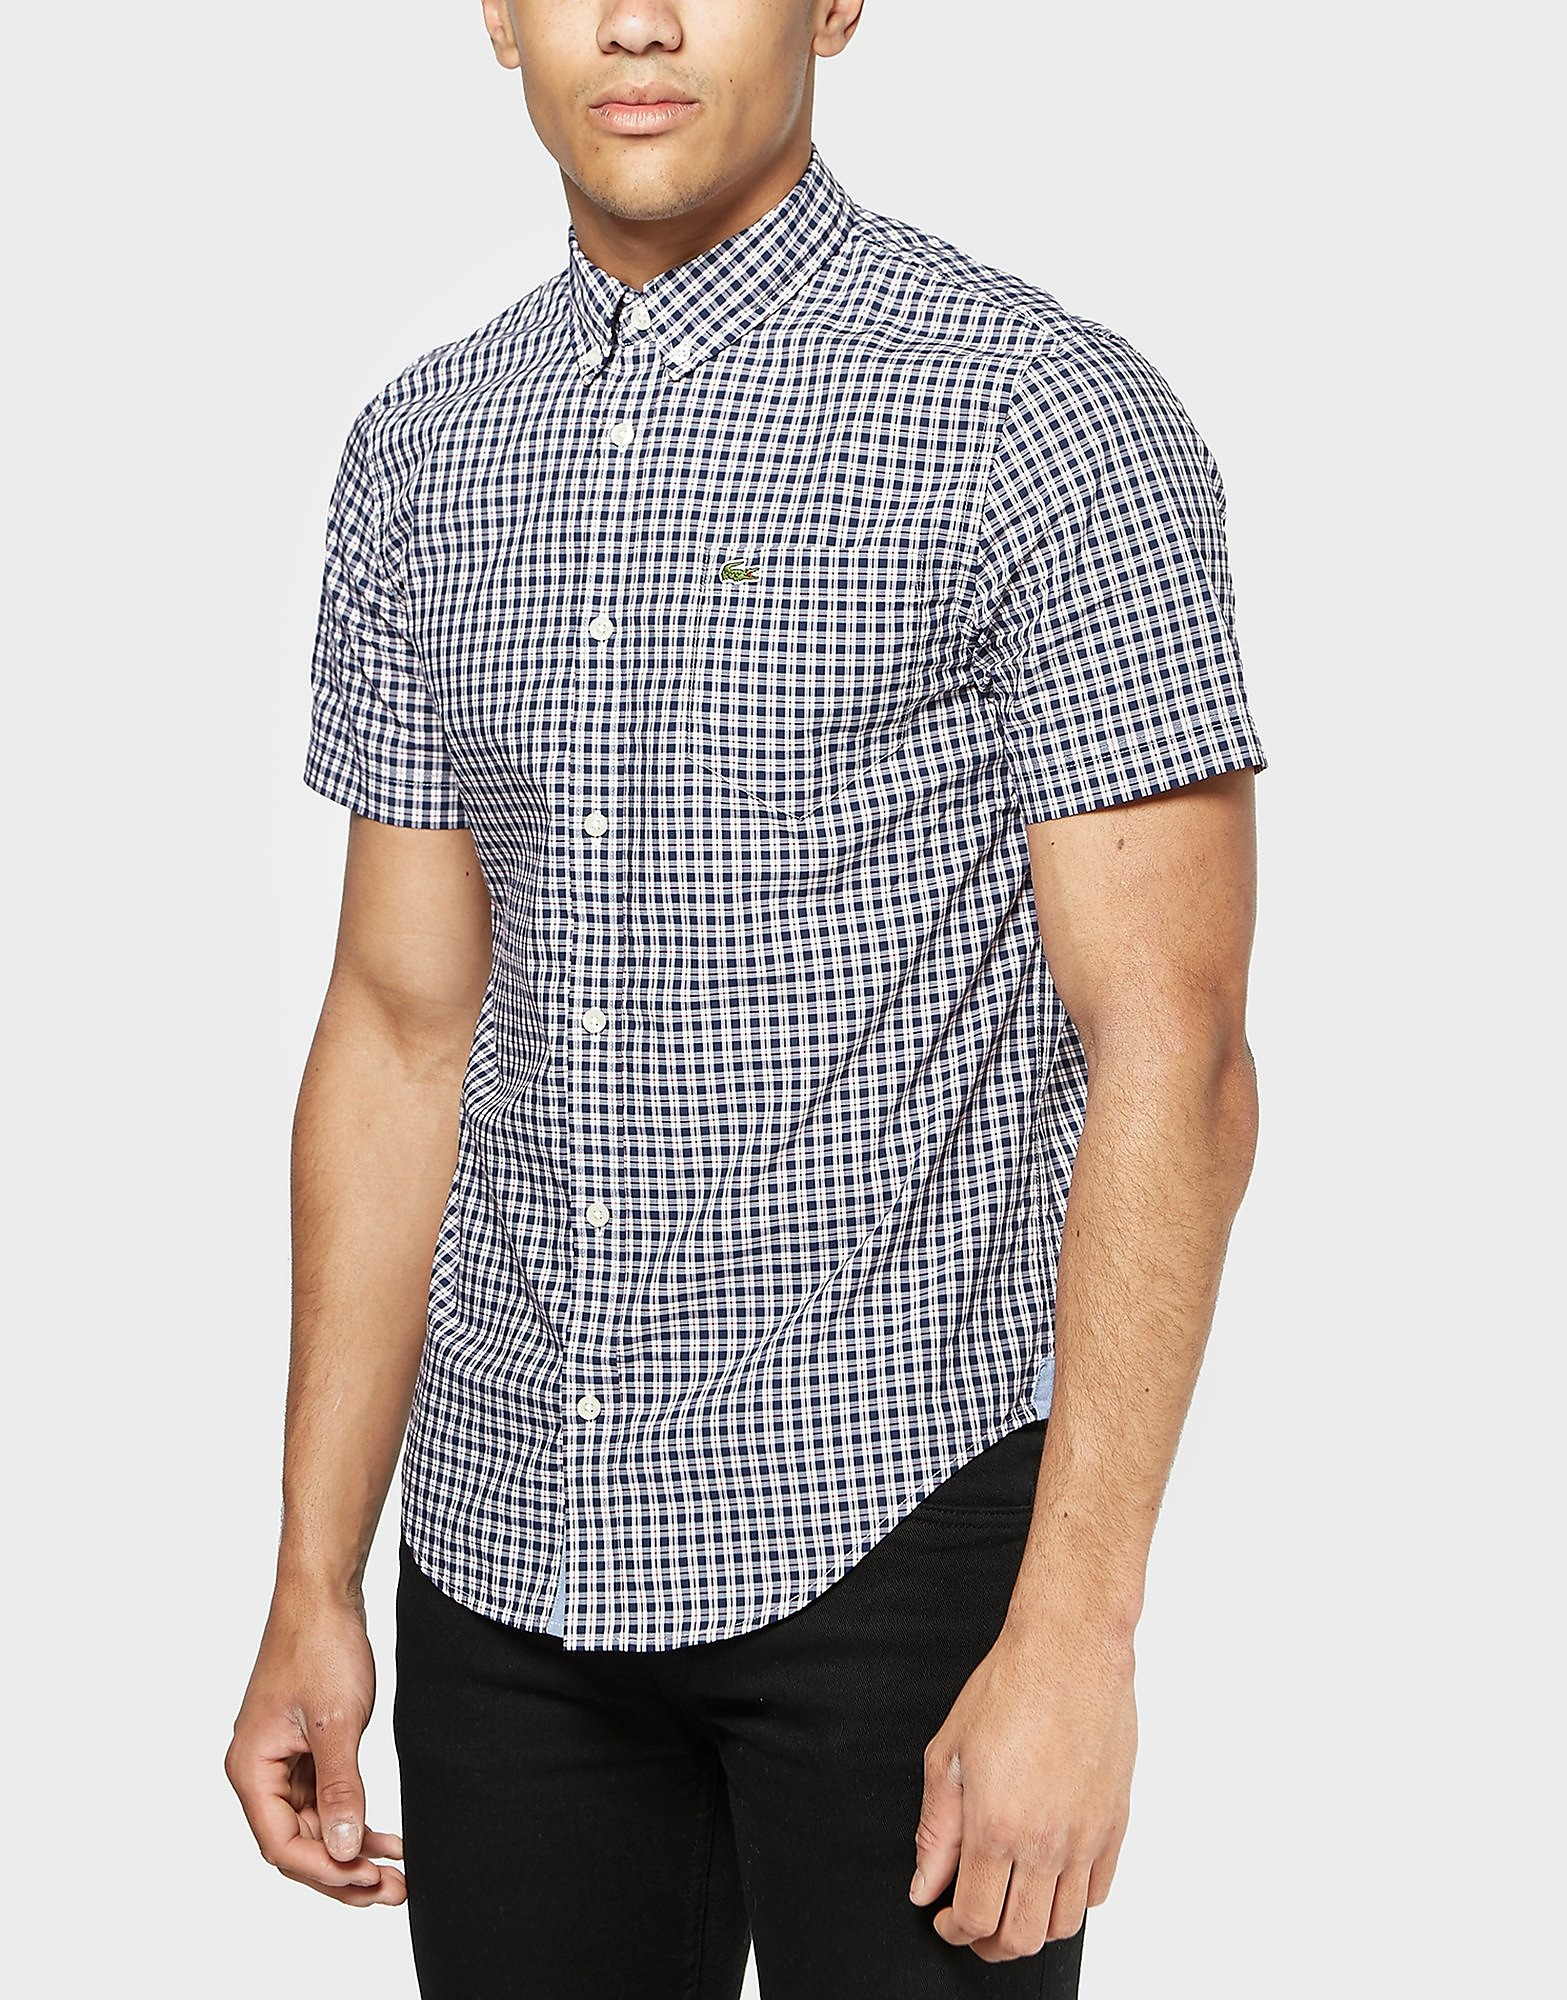 Lacoste Poplin Check Short Sleeve Shirt